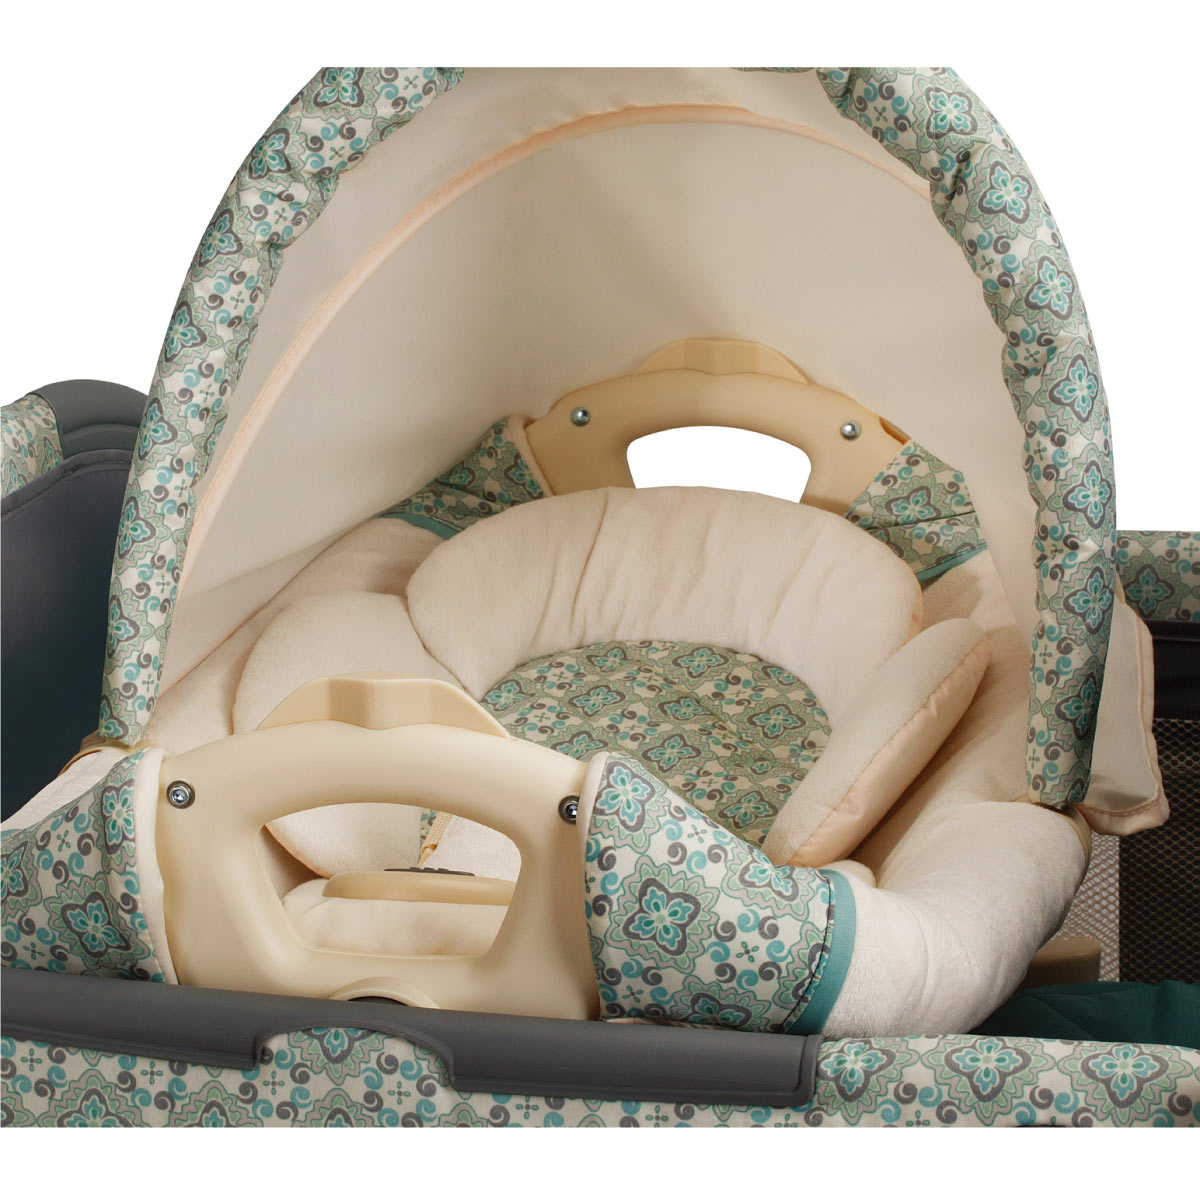 Pack'n_Play_Playard_Premium_4969220003726_07